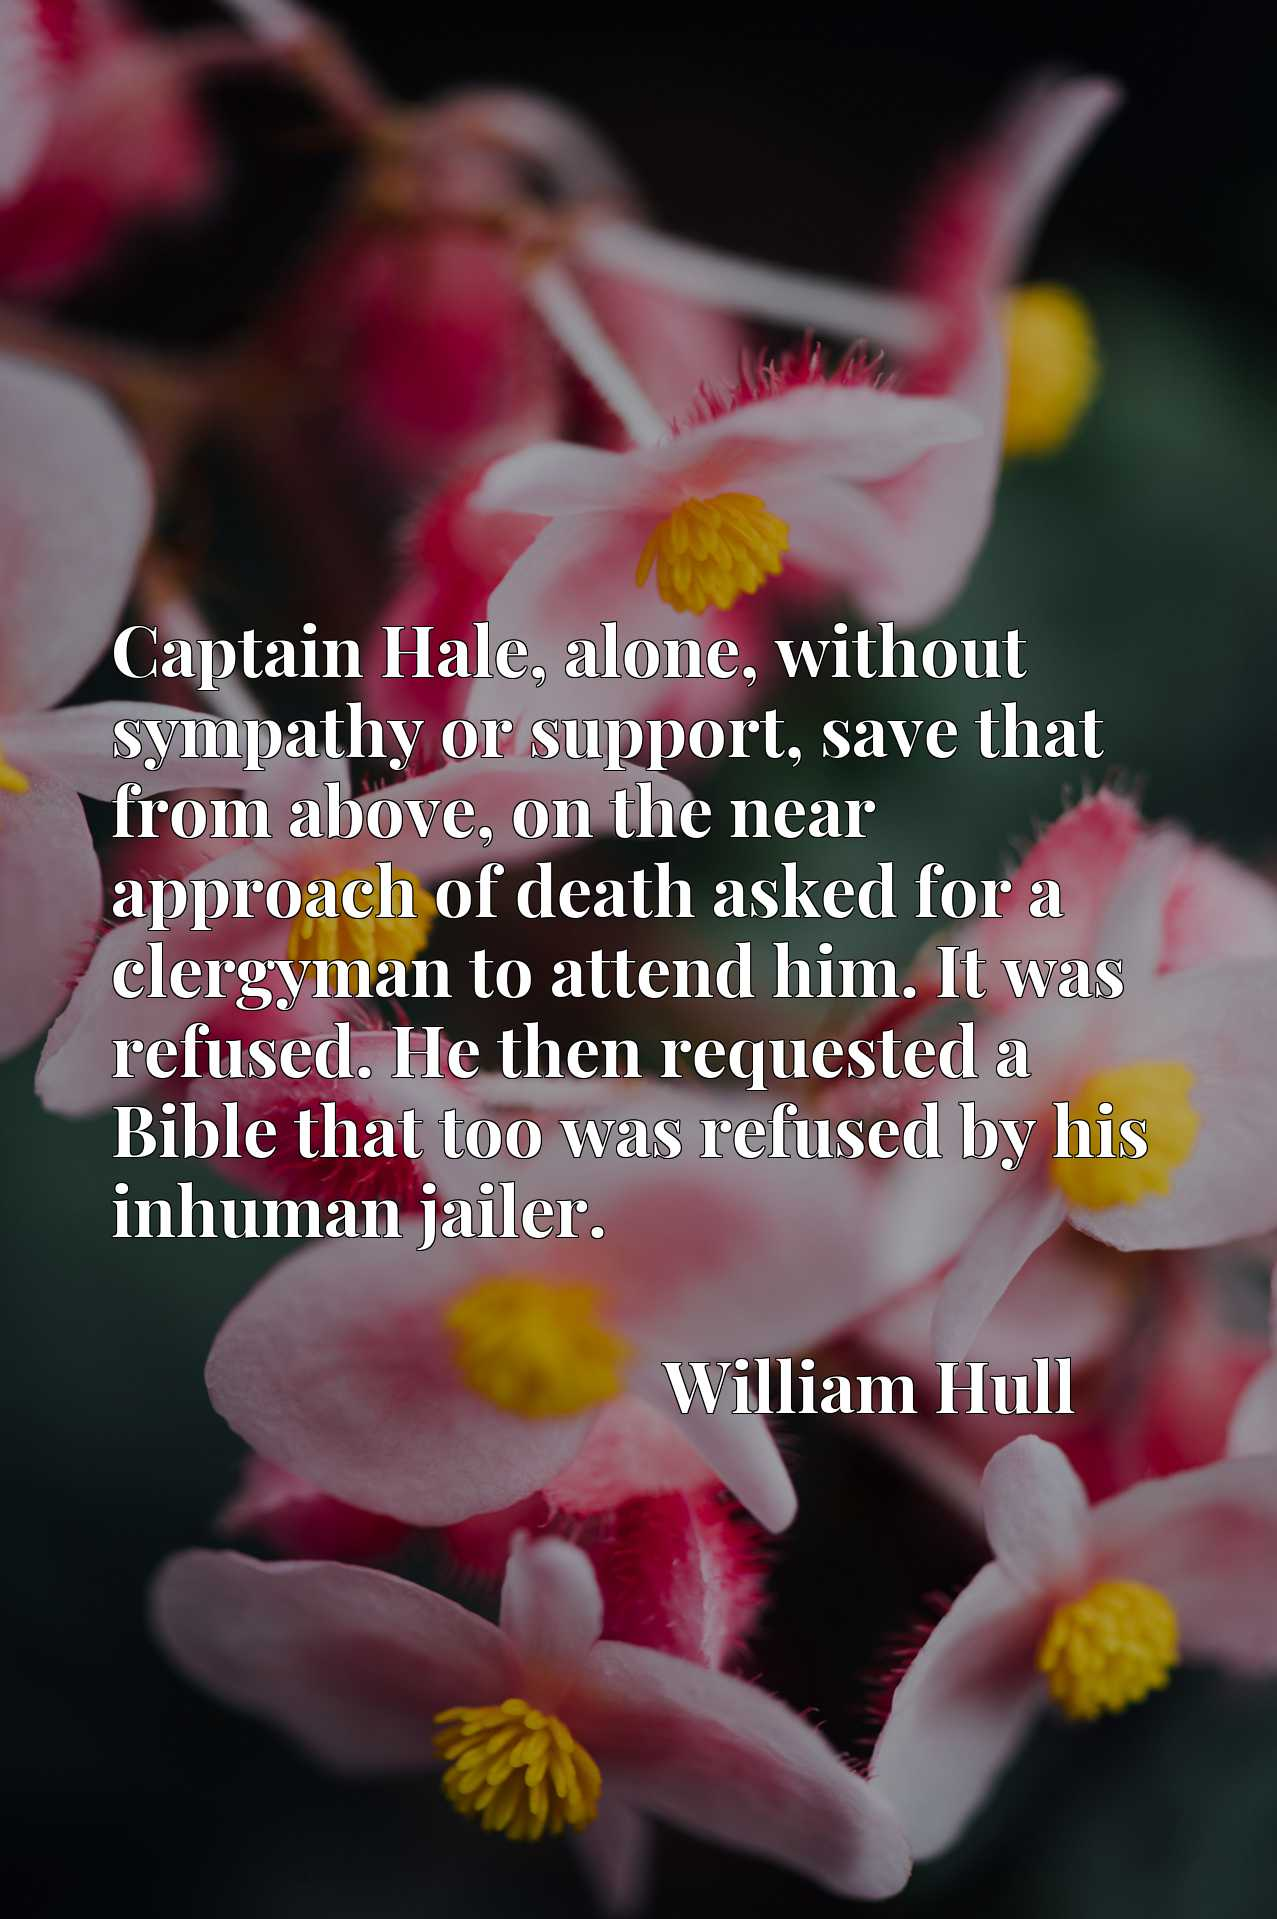 Quote Picture :Captain Hale, alone, without sympathy or support, save that from above, on the near approach of death asked for a clergyman to attend him. It was refused. He then requested a Bible that too was refused by his inhuman jailer.